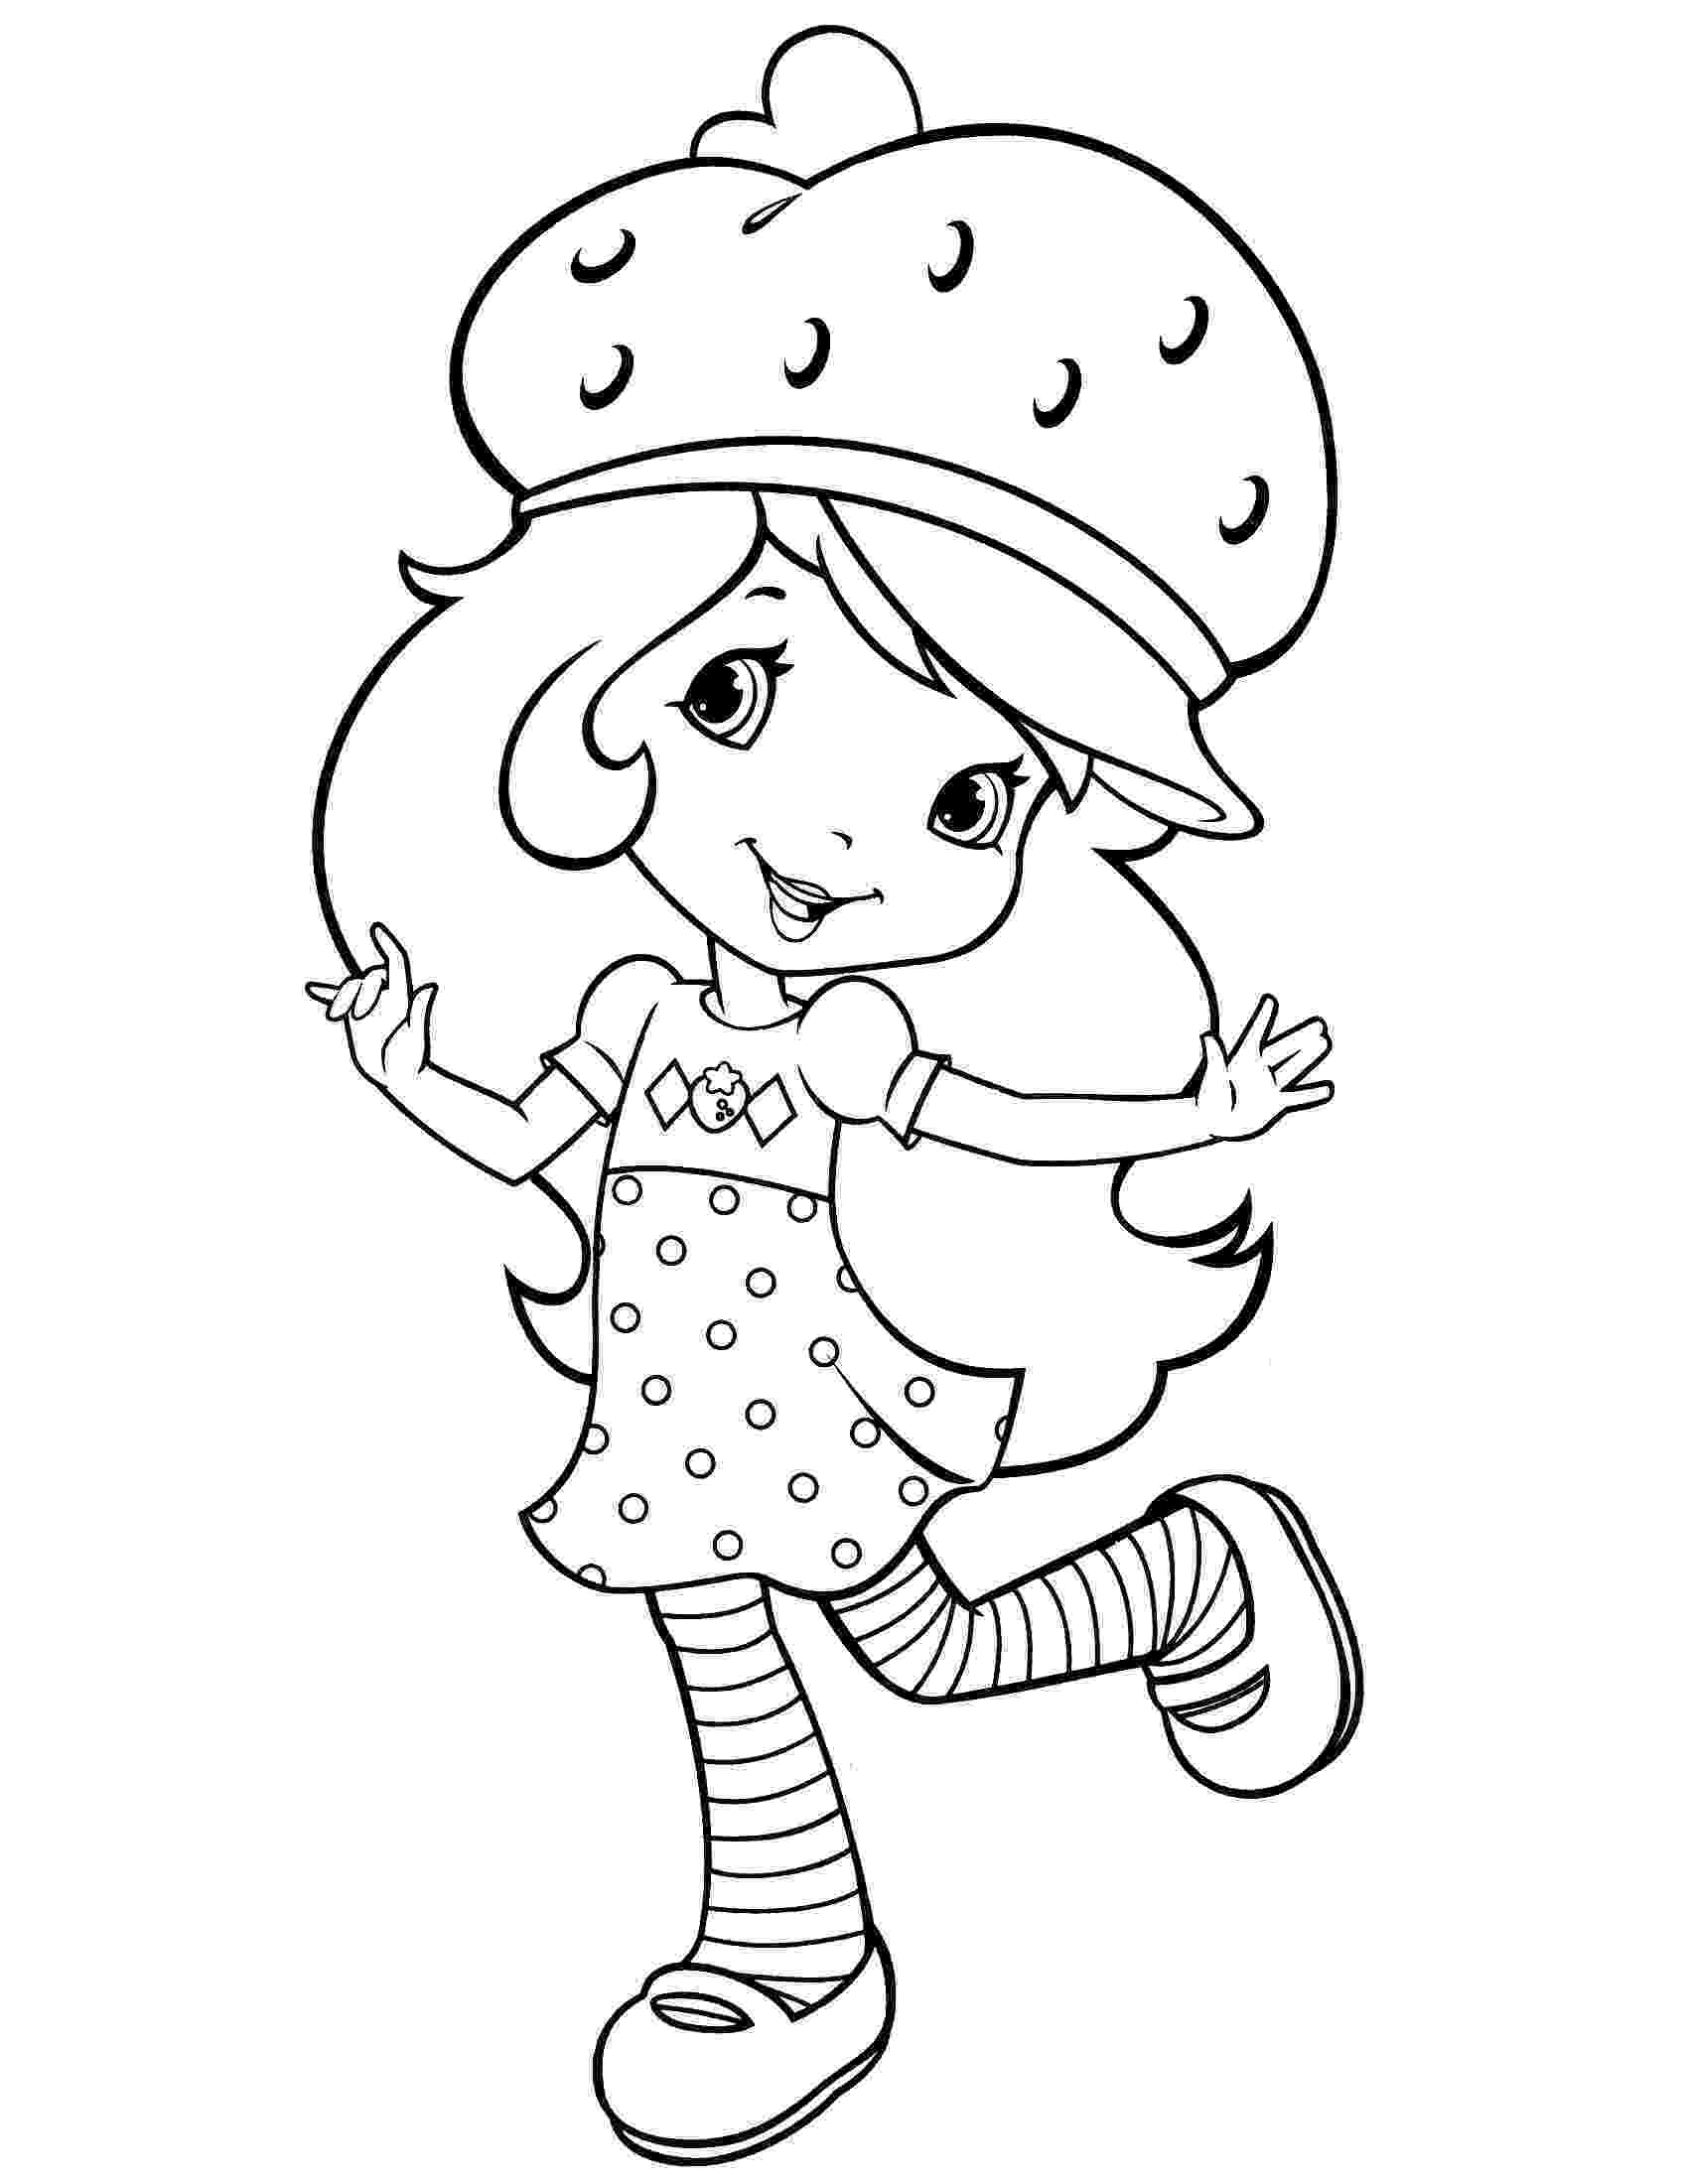 pictures of strawberry shortcake strawberry shortcake coloring pages coloring pages for kids of pictures shortcake strawberry